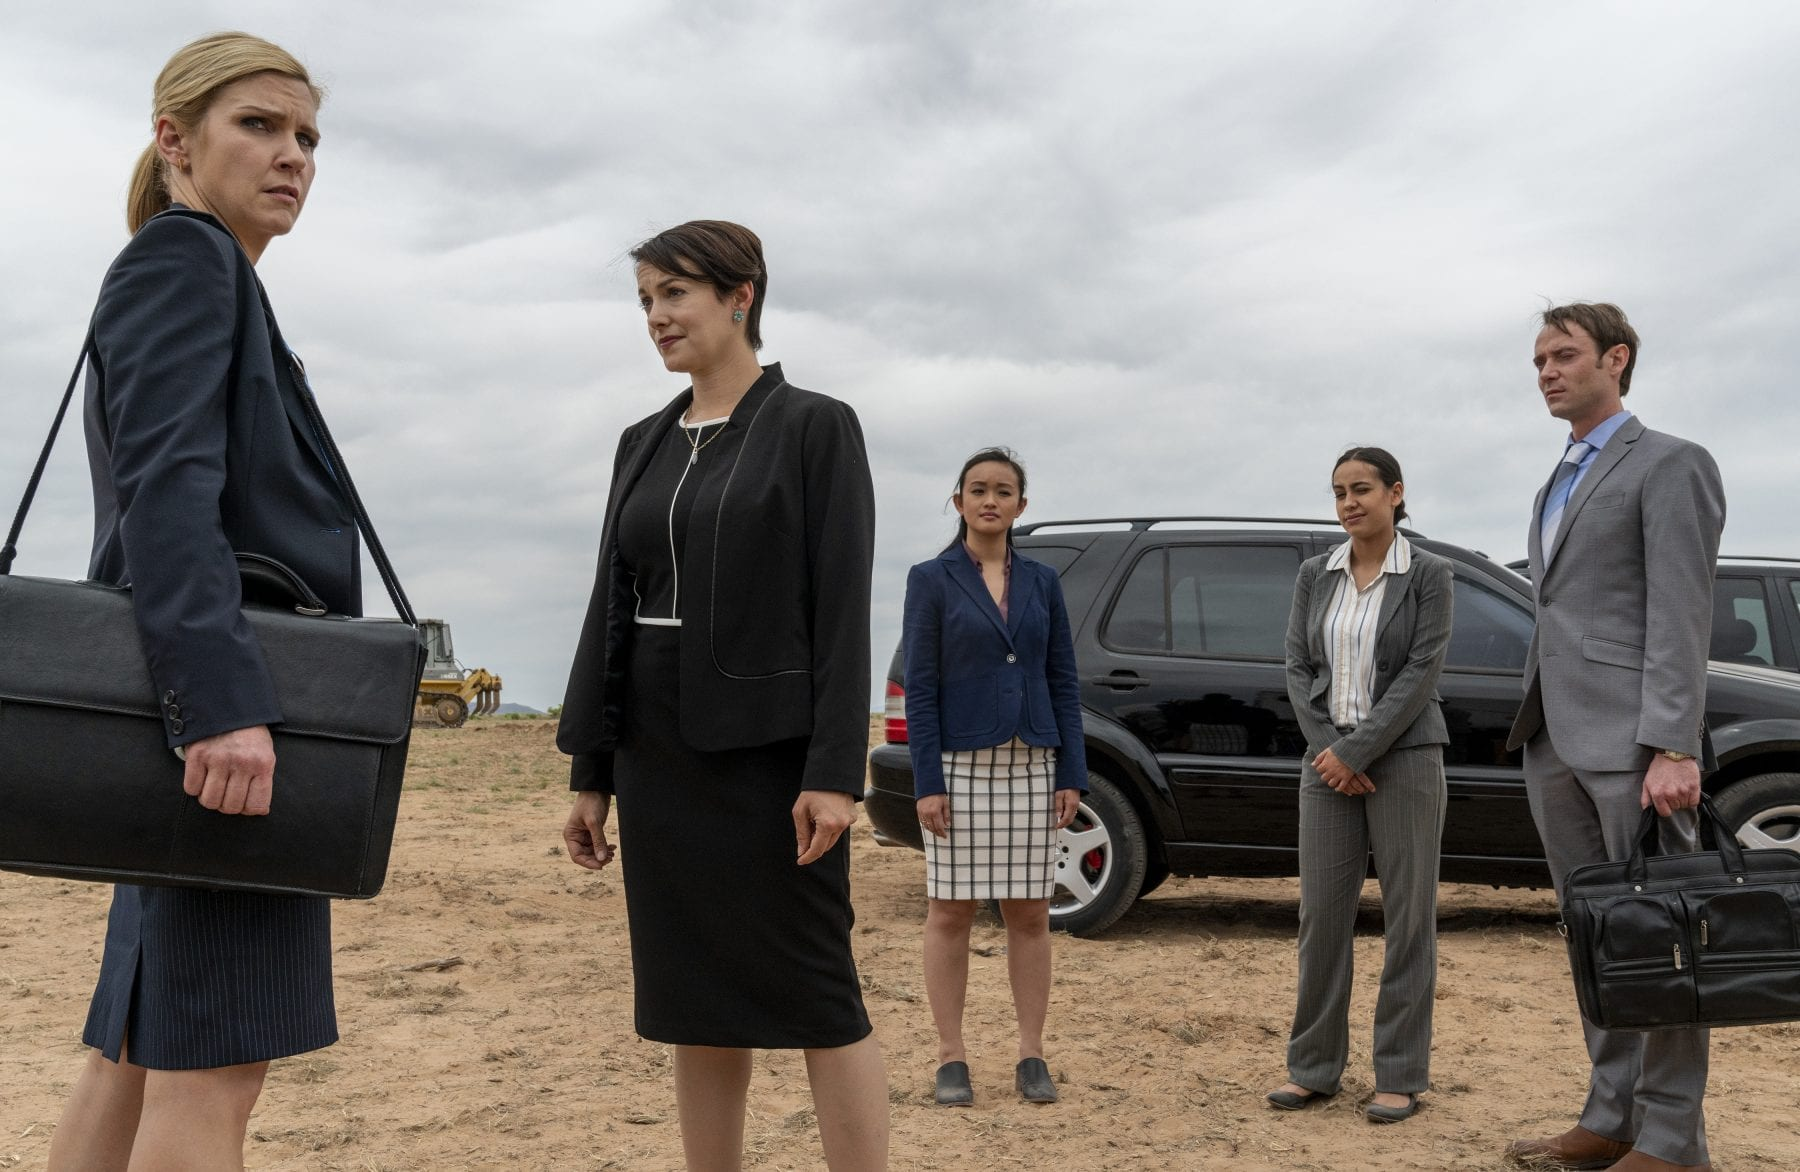 Kim, Paige, and three associates stand in front of a black SUV at the Tucumcari build site